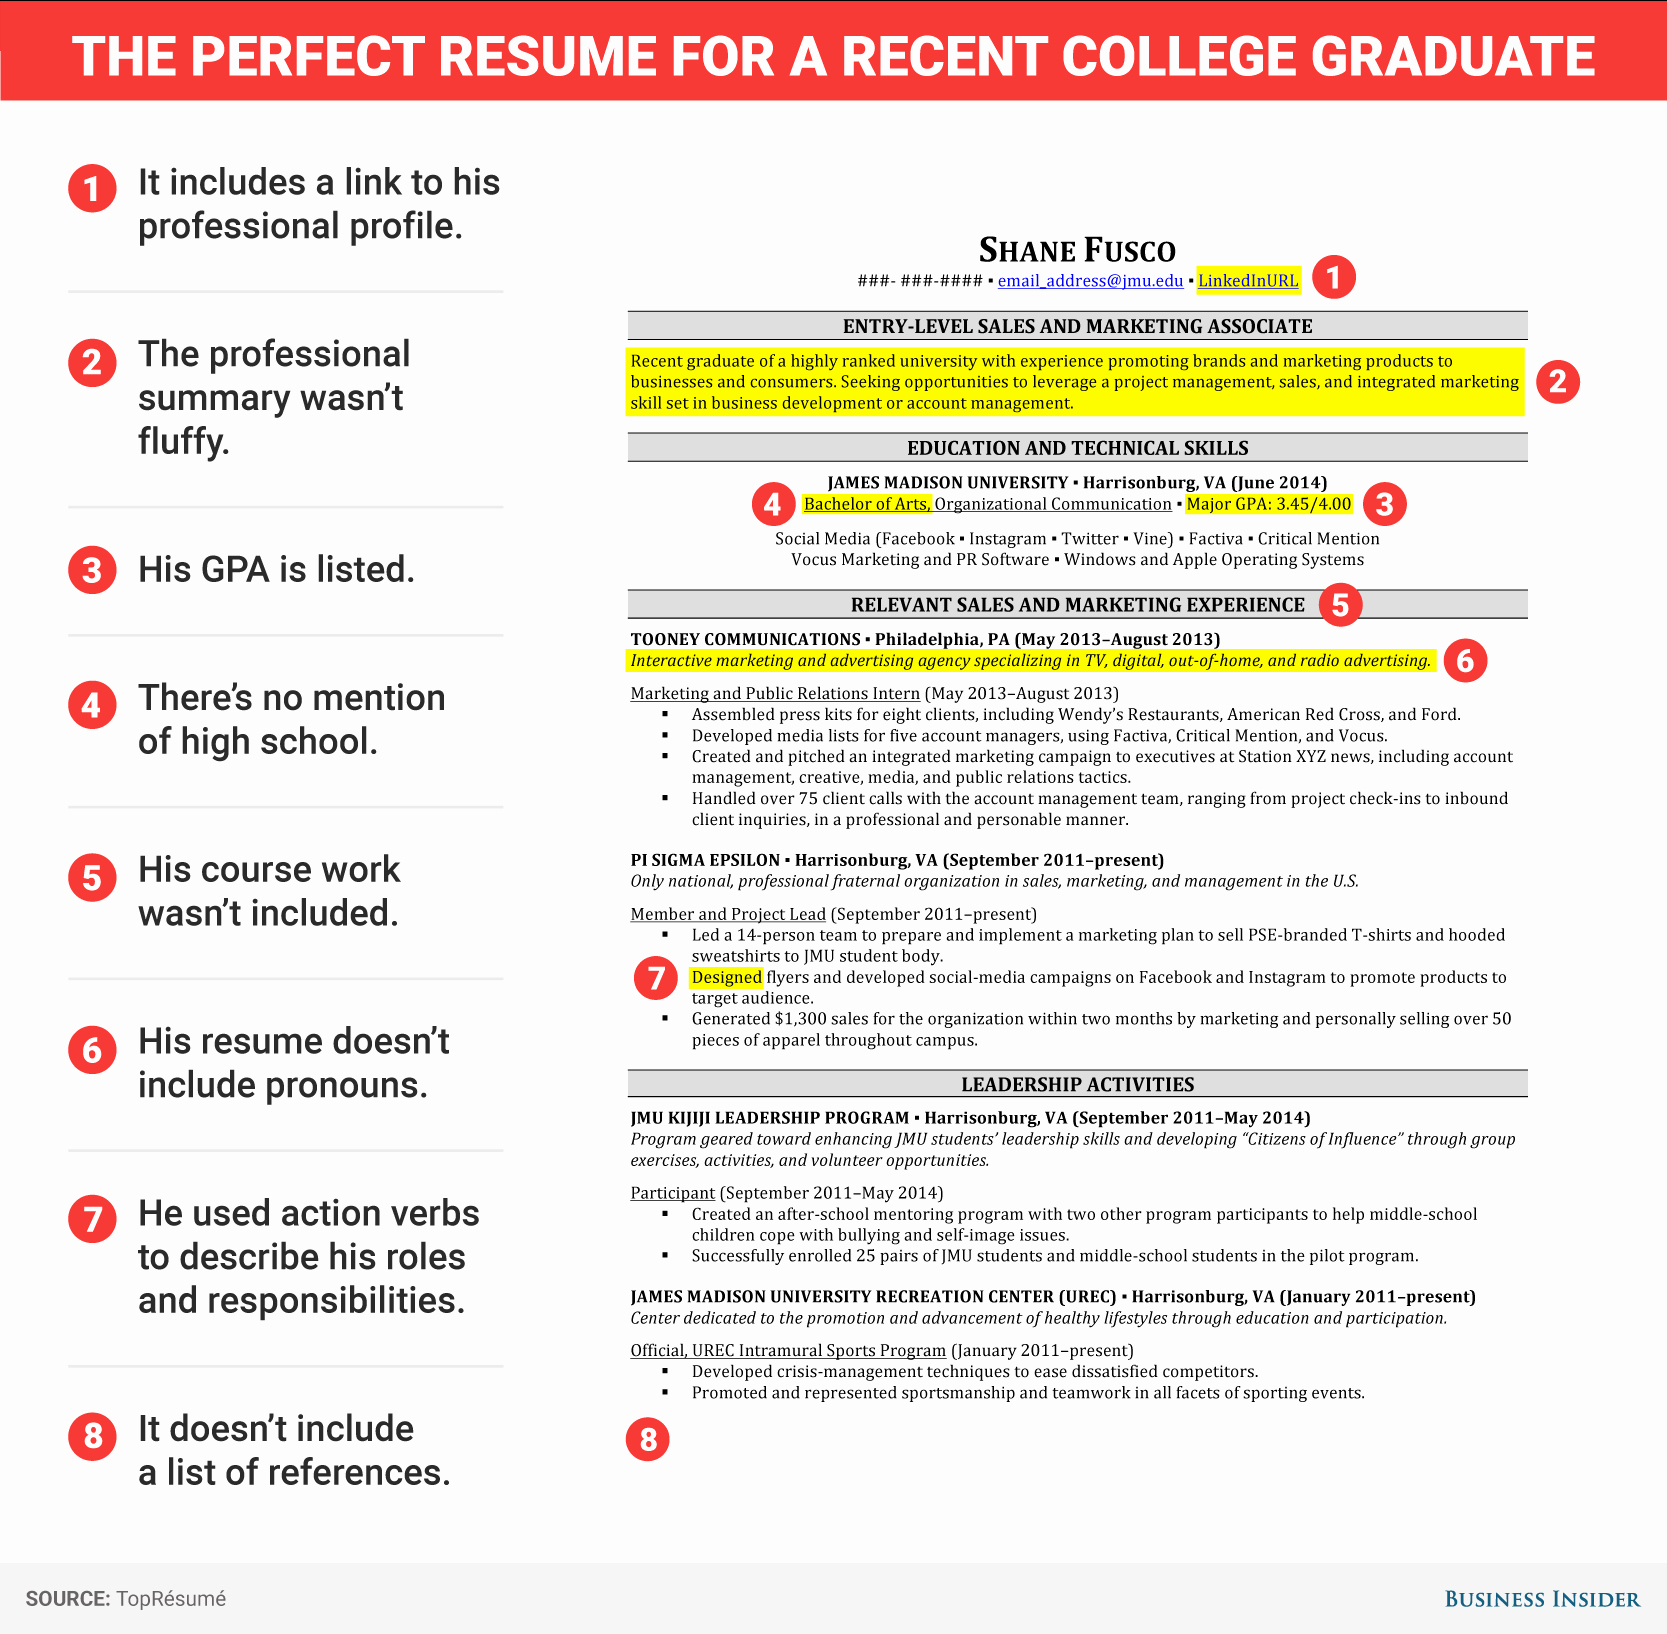 Resumes for New College Graduates Awesome Excellent Resume for Recent College Grad Business Insider